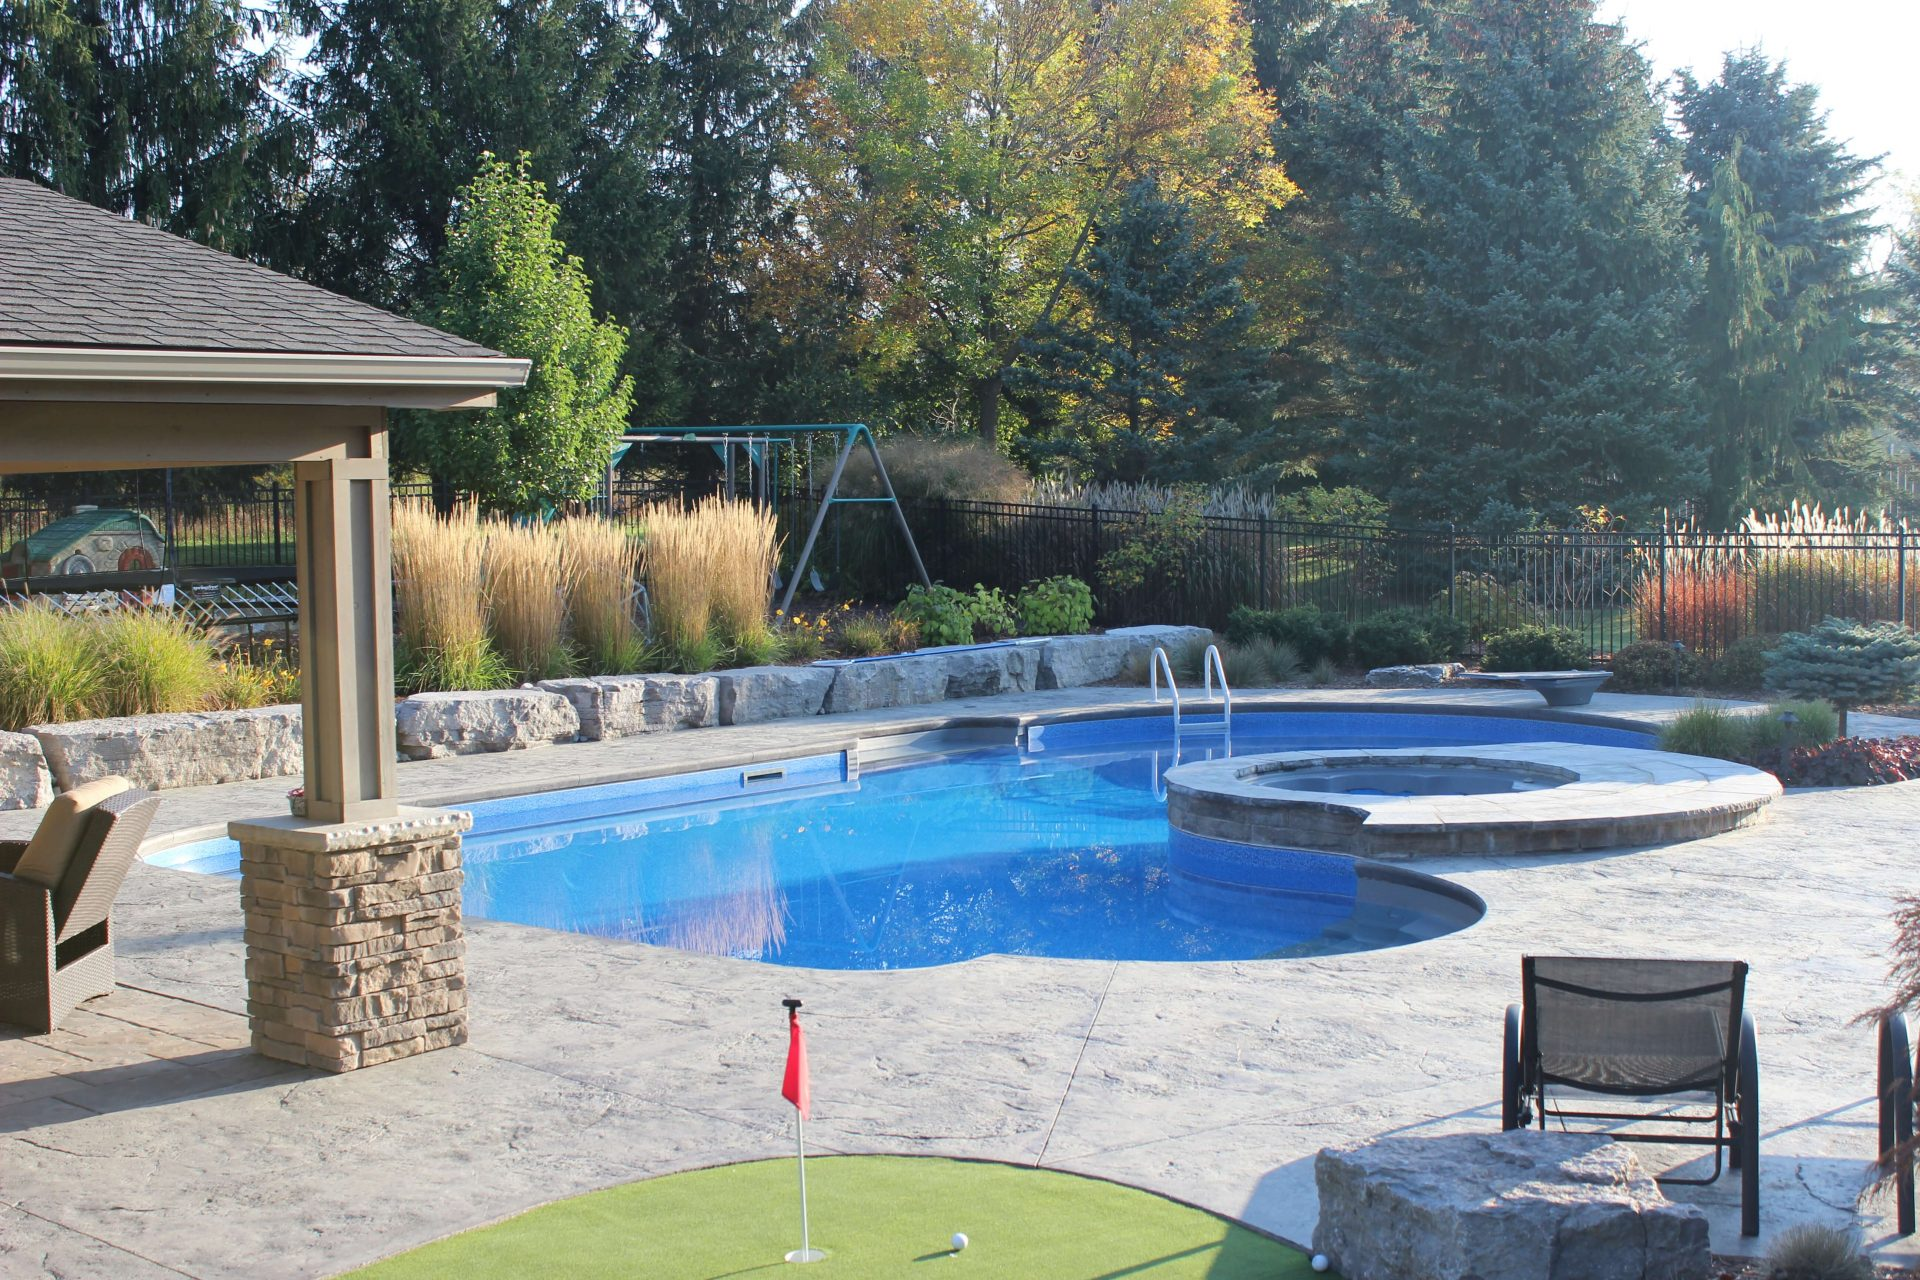 Hot tub for two built into underground pool of backyard